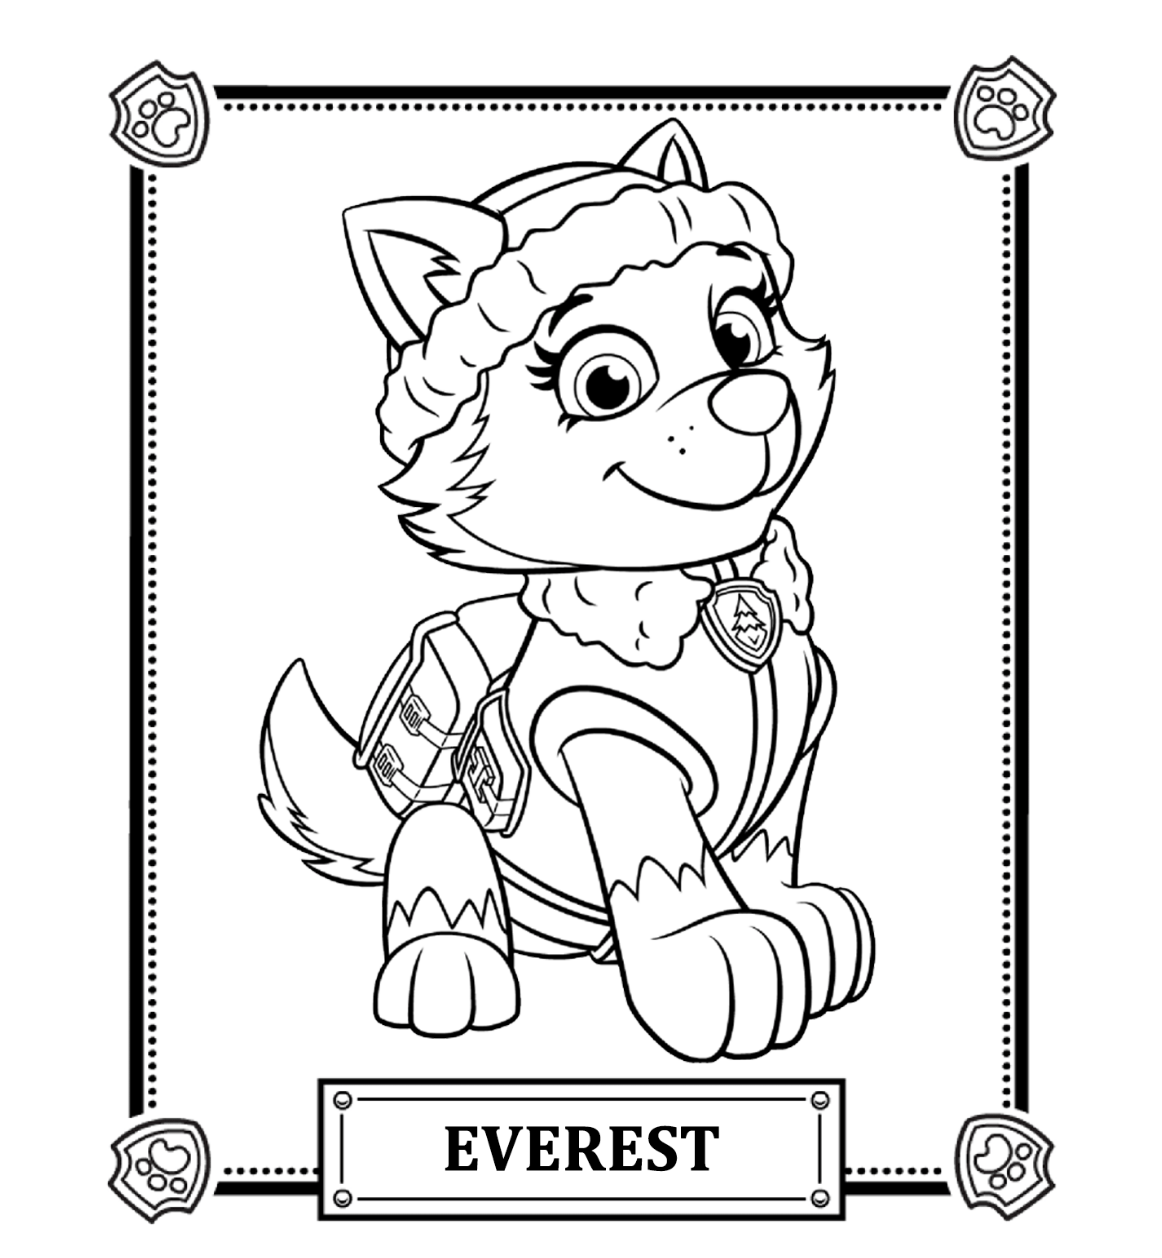 Paw Patrol Everest Coloring Pages … Pinteres…